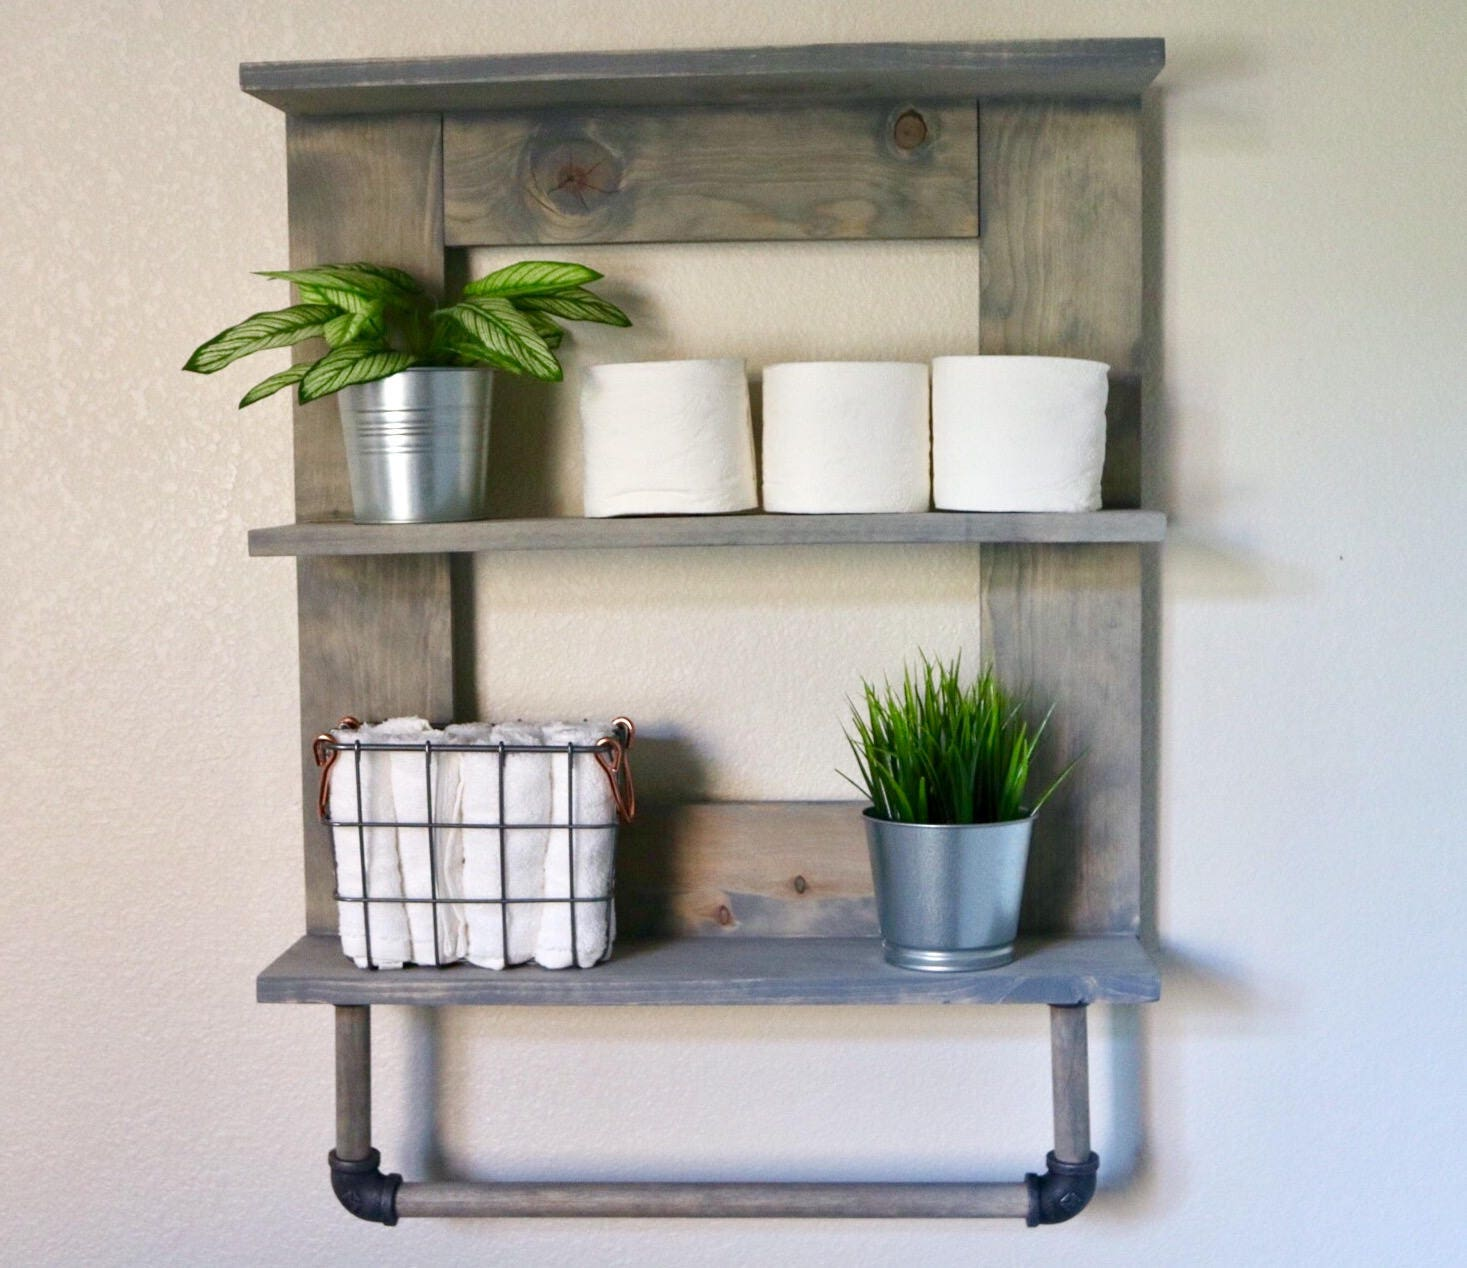 towel rack wooden bathroom shelf bathroom organizer wooden. Black Bedroom Furniture Sets. Home Design Ideas